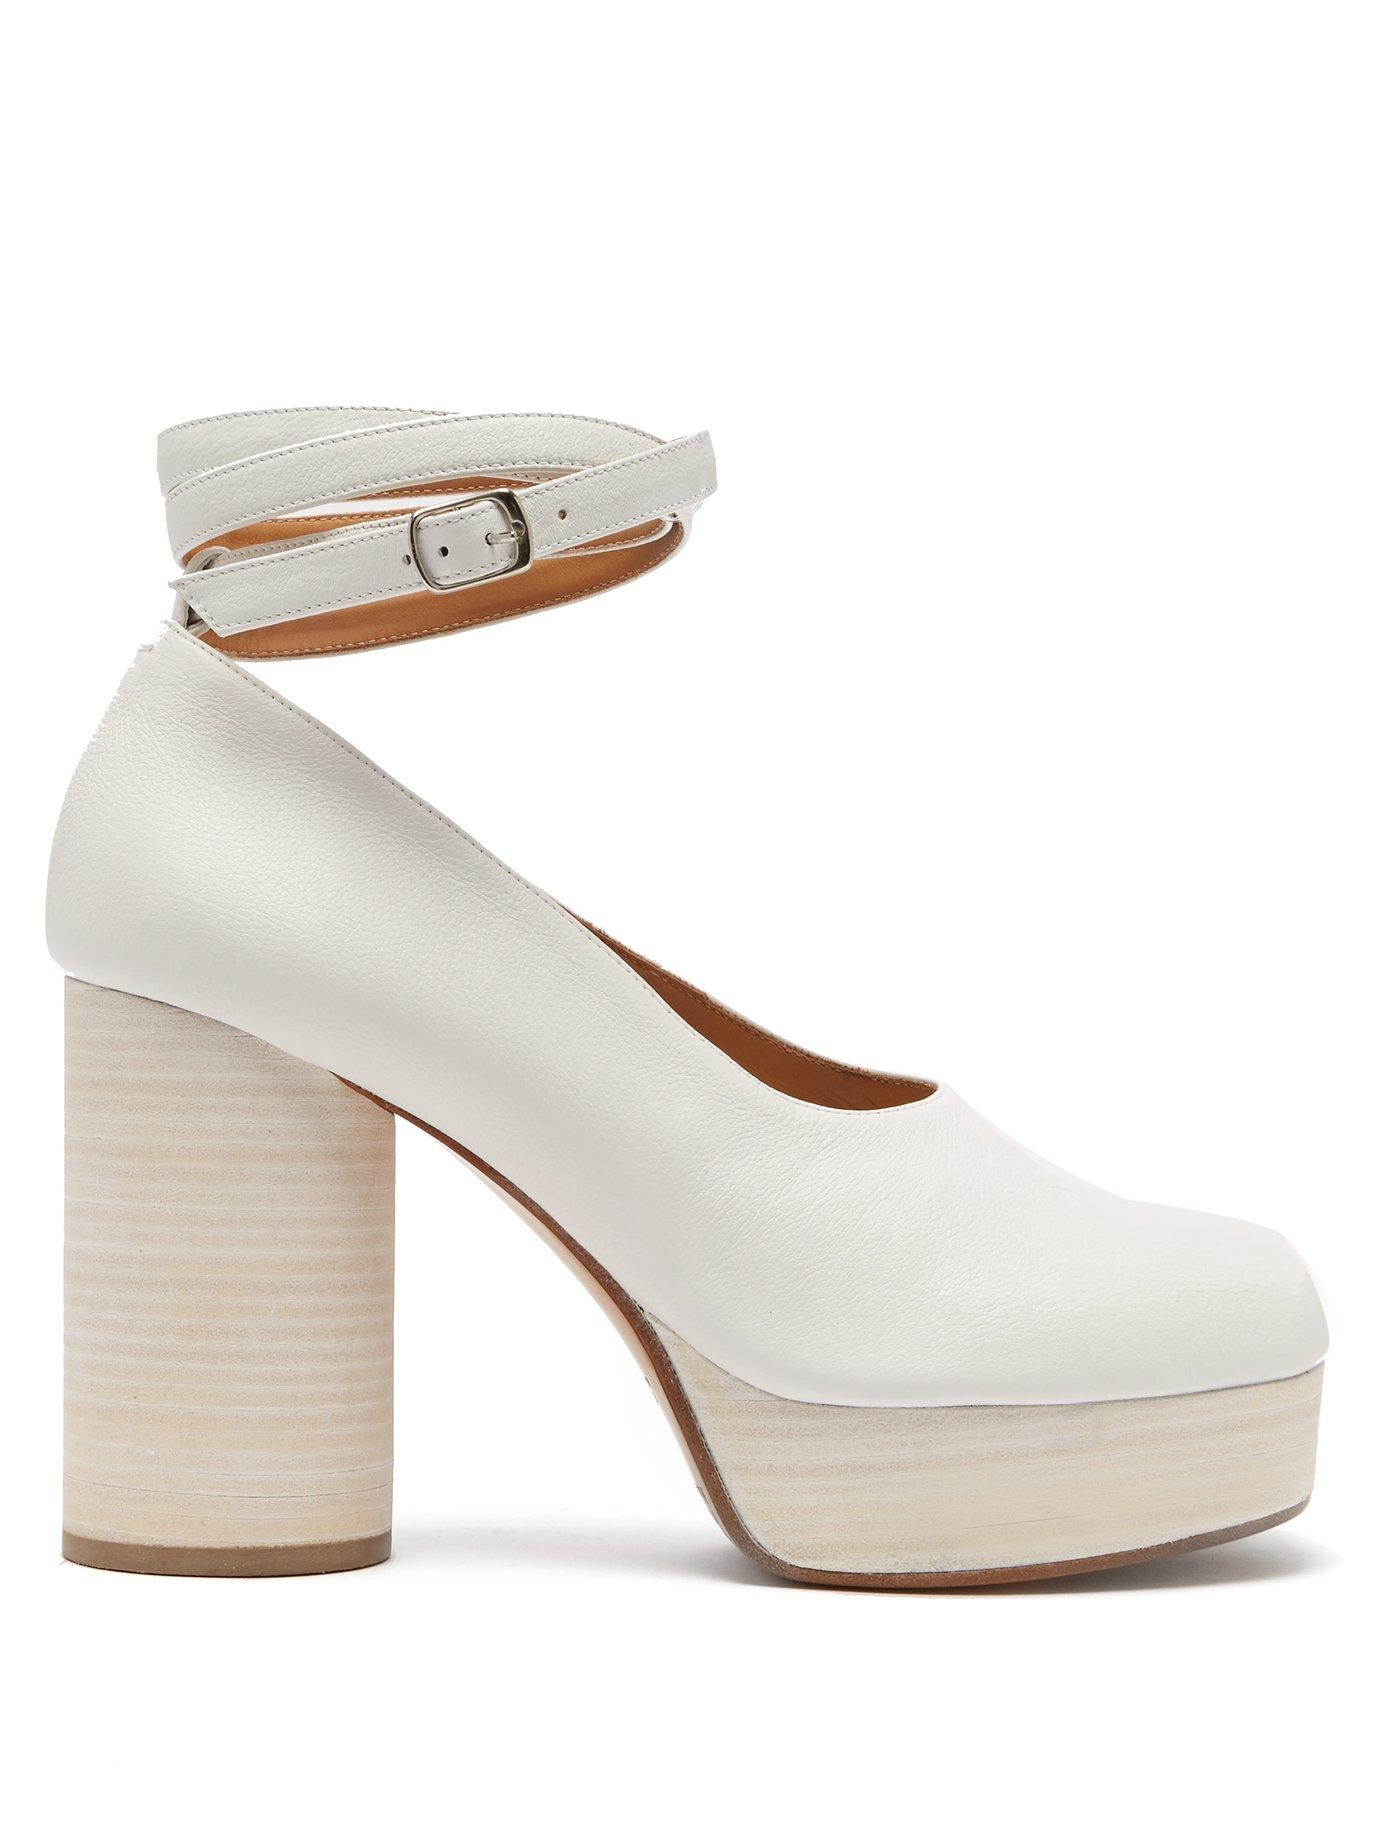 729688fa5158 Maison Margiela Tabi Ankle Tie Leather Pumps in White - Lyst